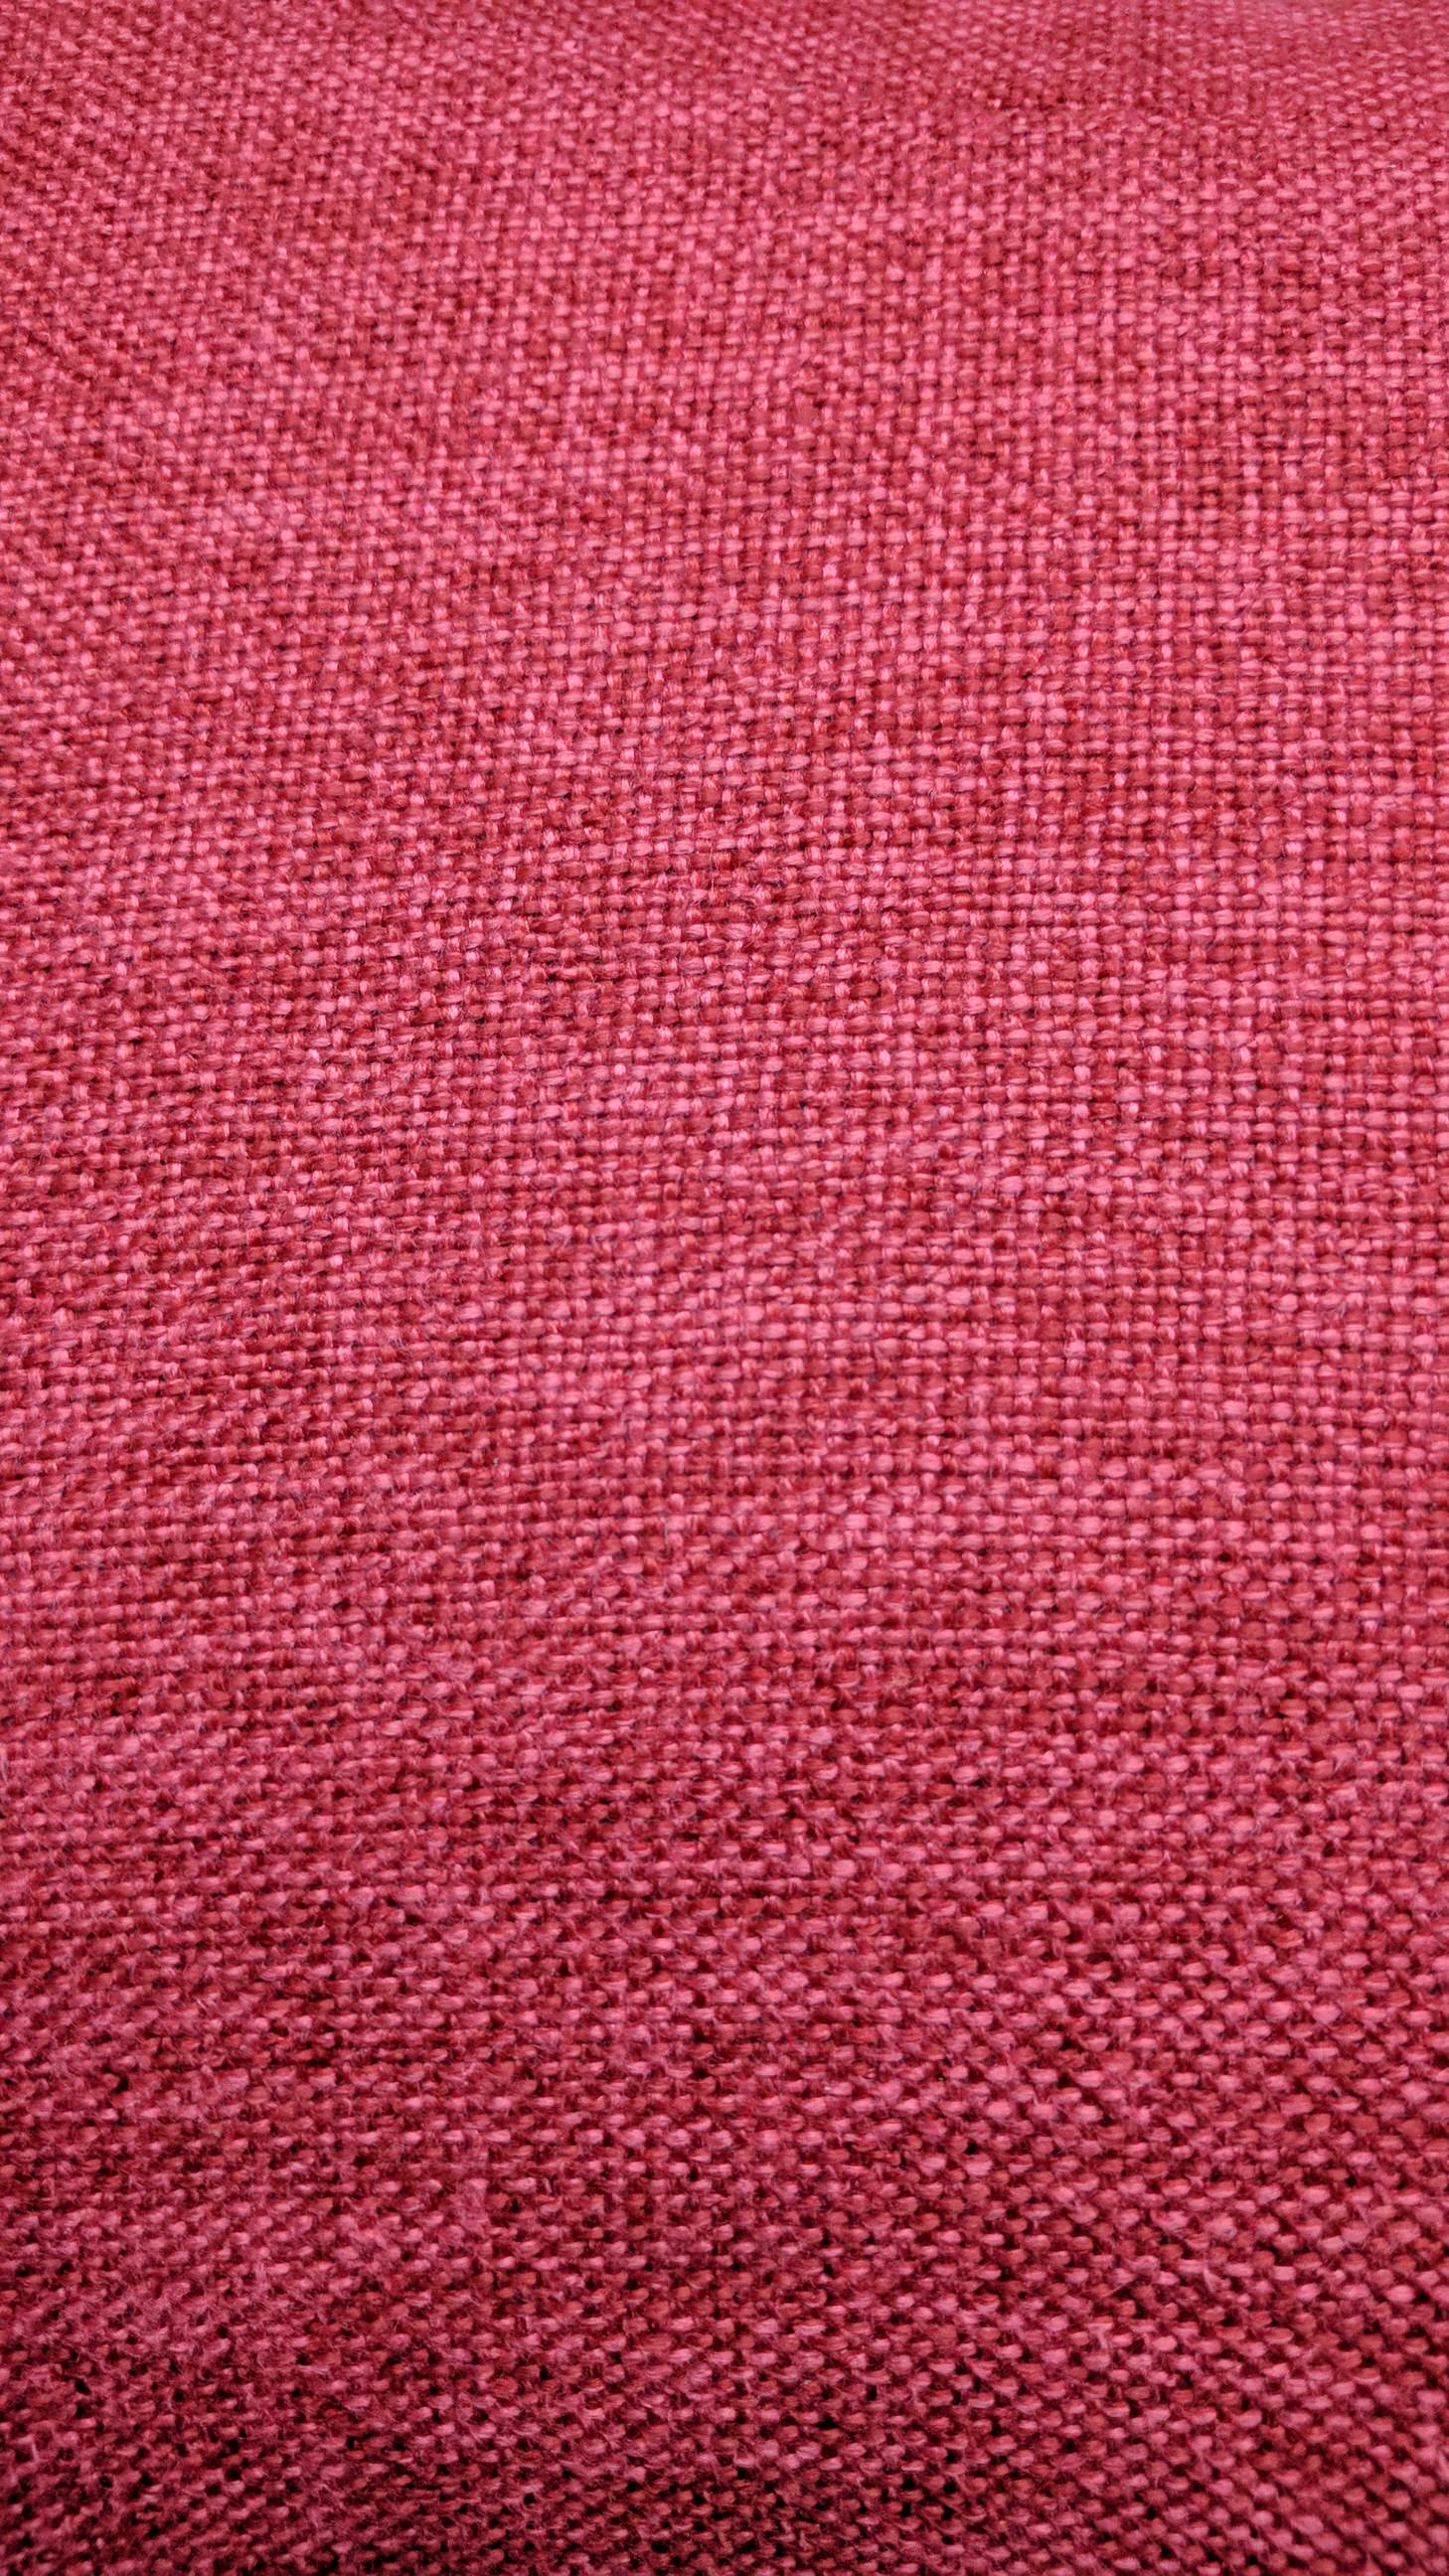 chaise provincial and french product red upholstery gold antique pink lounge